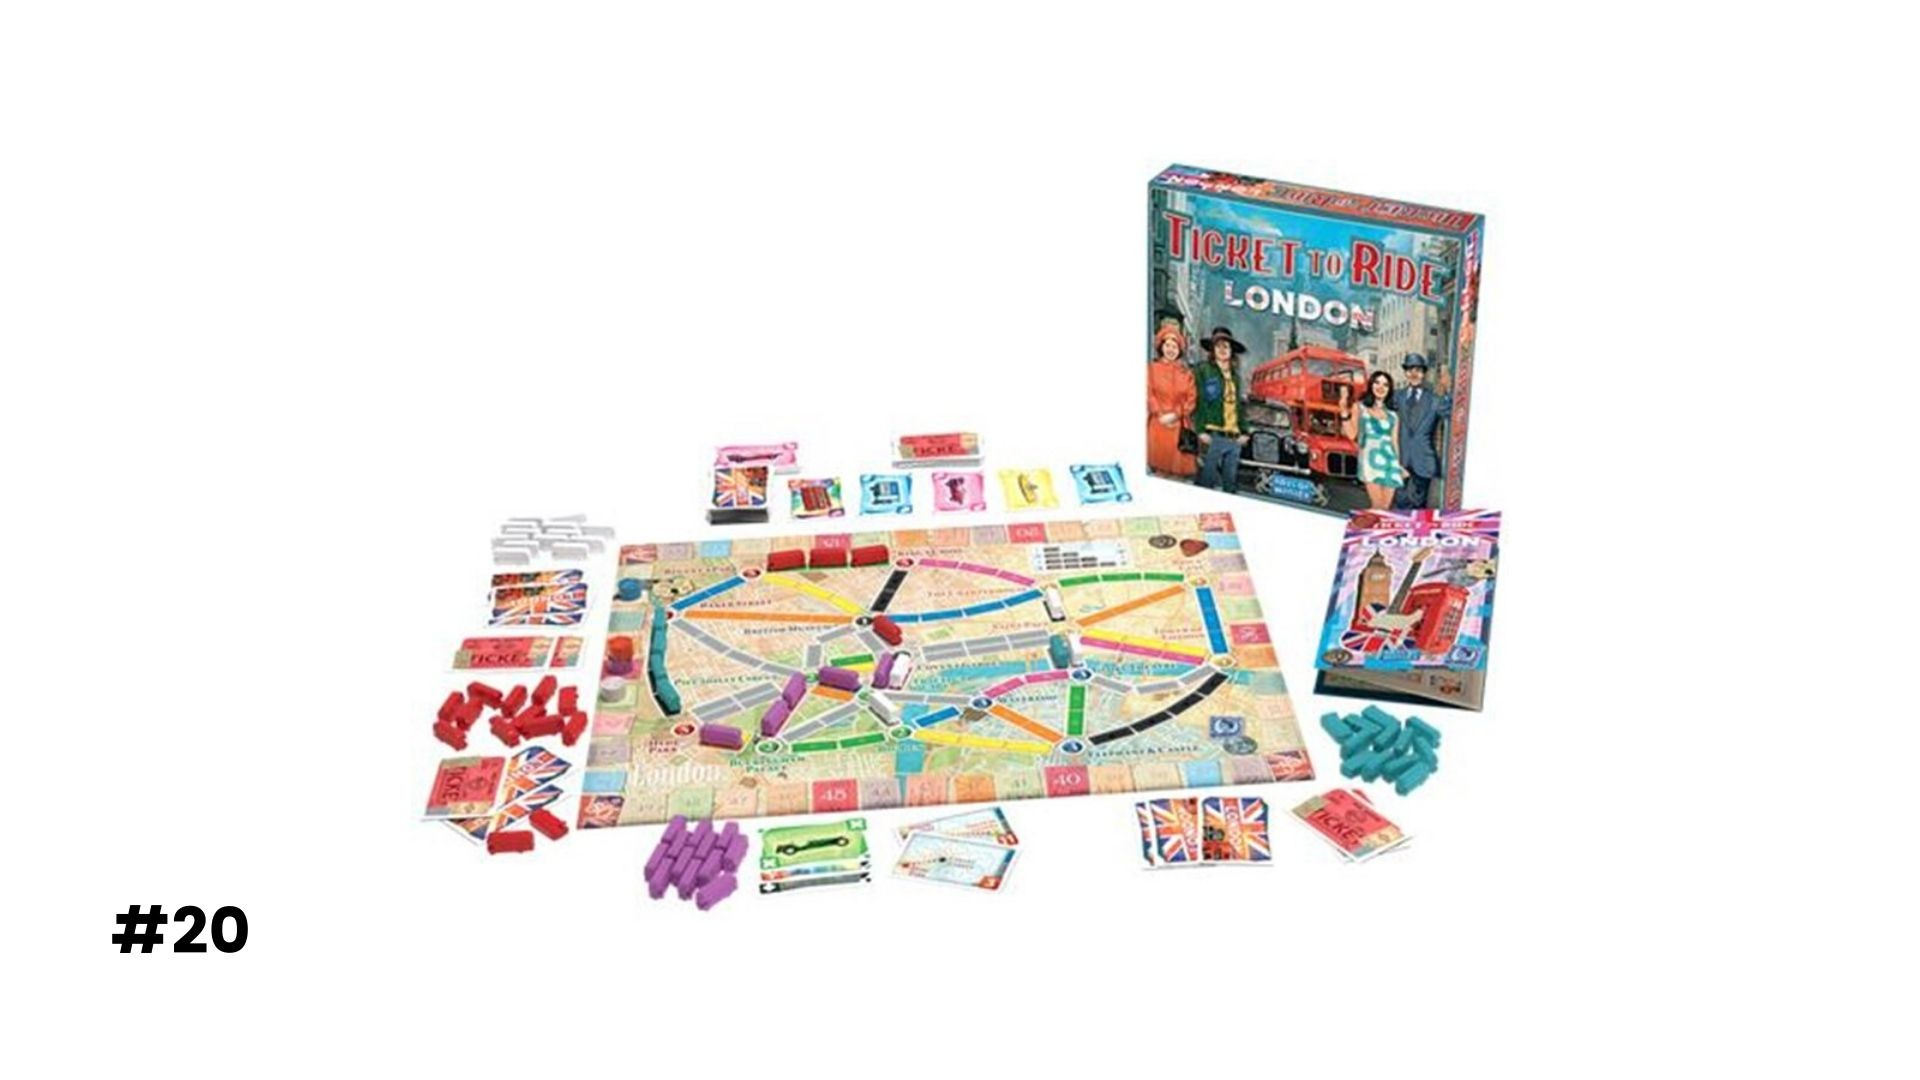 #20 Ticket to Ride: London